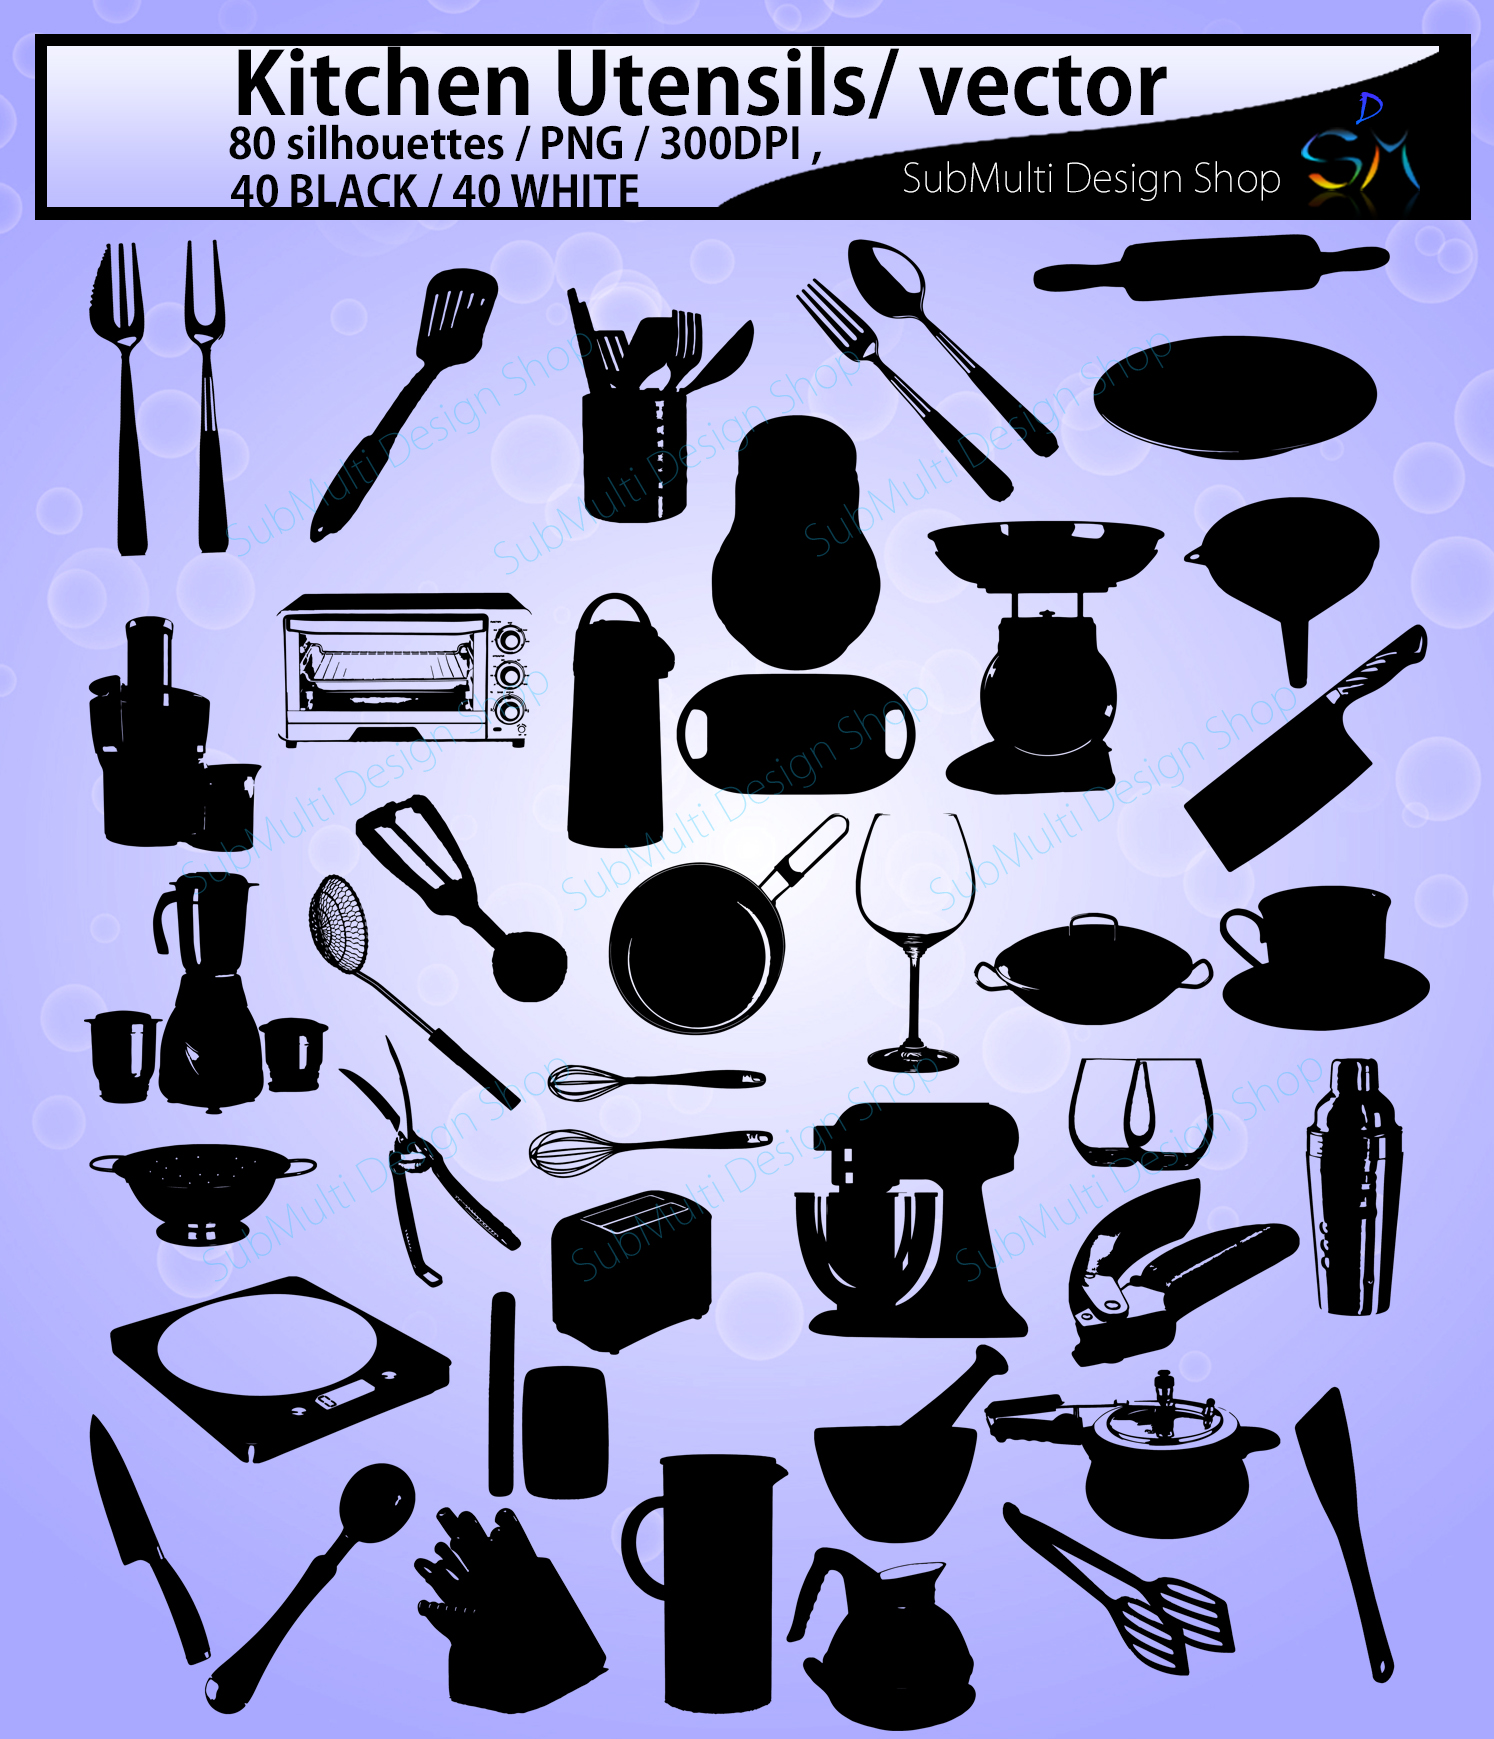 Kitchen Utensils silhouette svg / Kitchen Utensils clipart / Kitchen Utensil for scrapbook and card making /vector / EPS / PNG / craft files example image 2